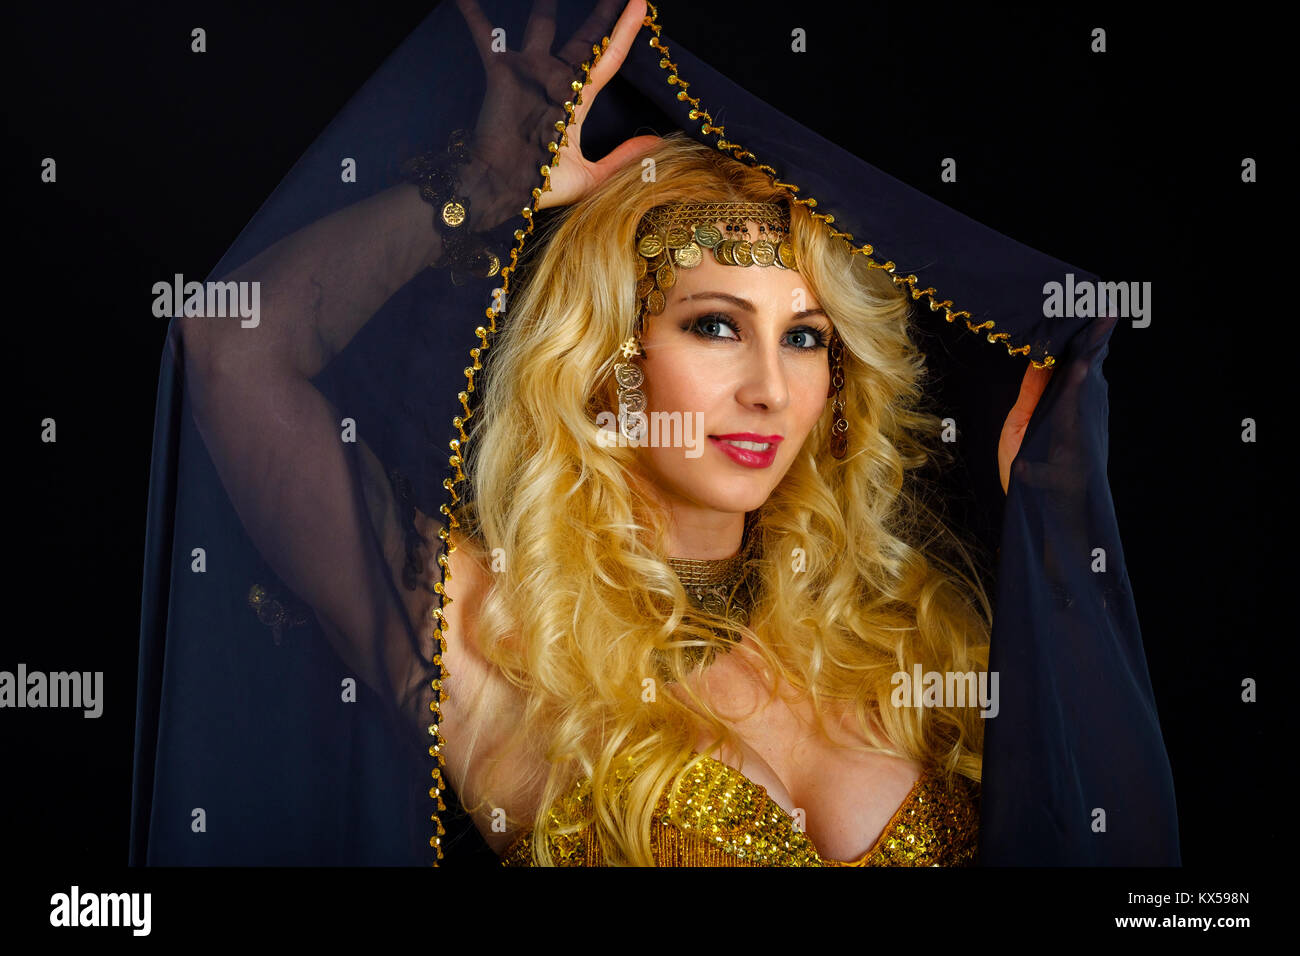 Woman fortune teller portrait at black - Stock Image